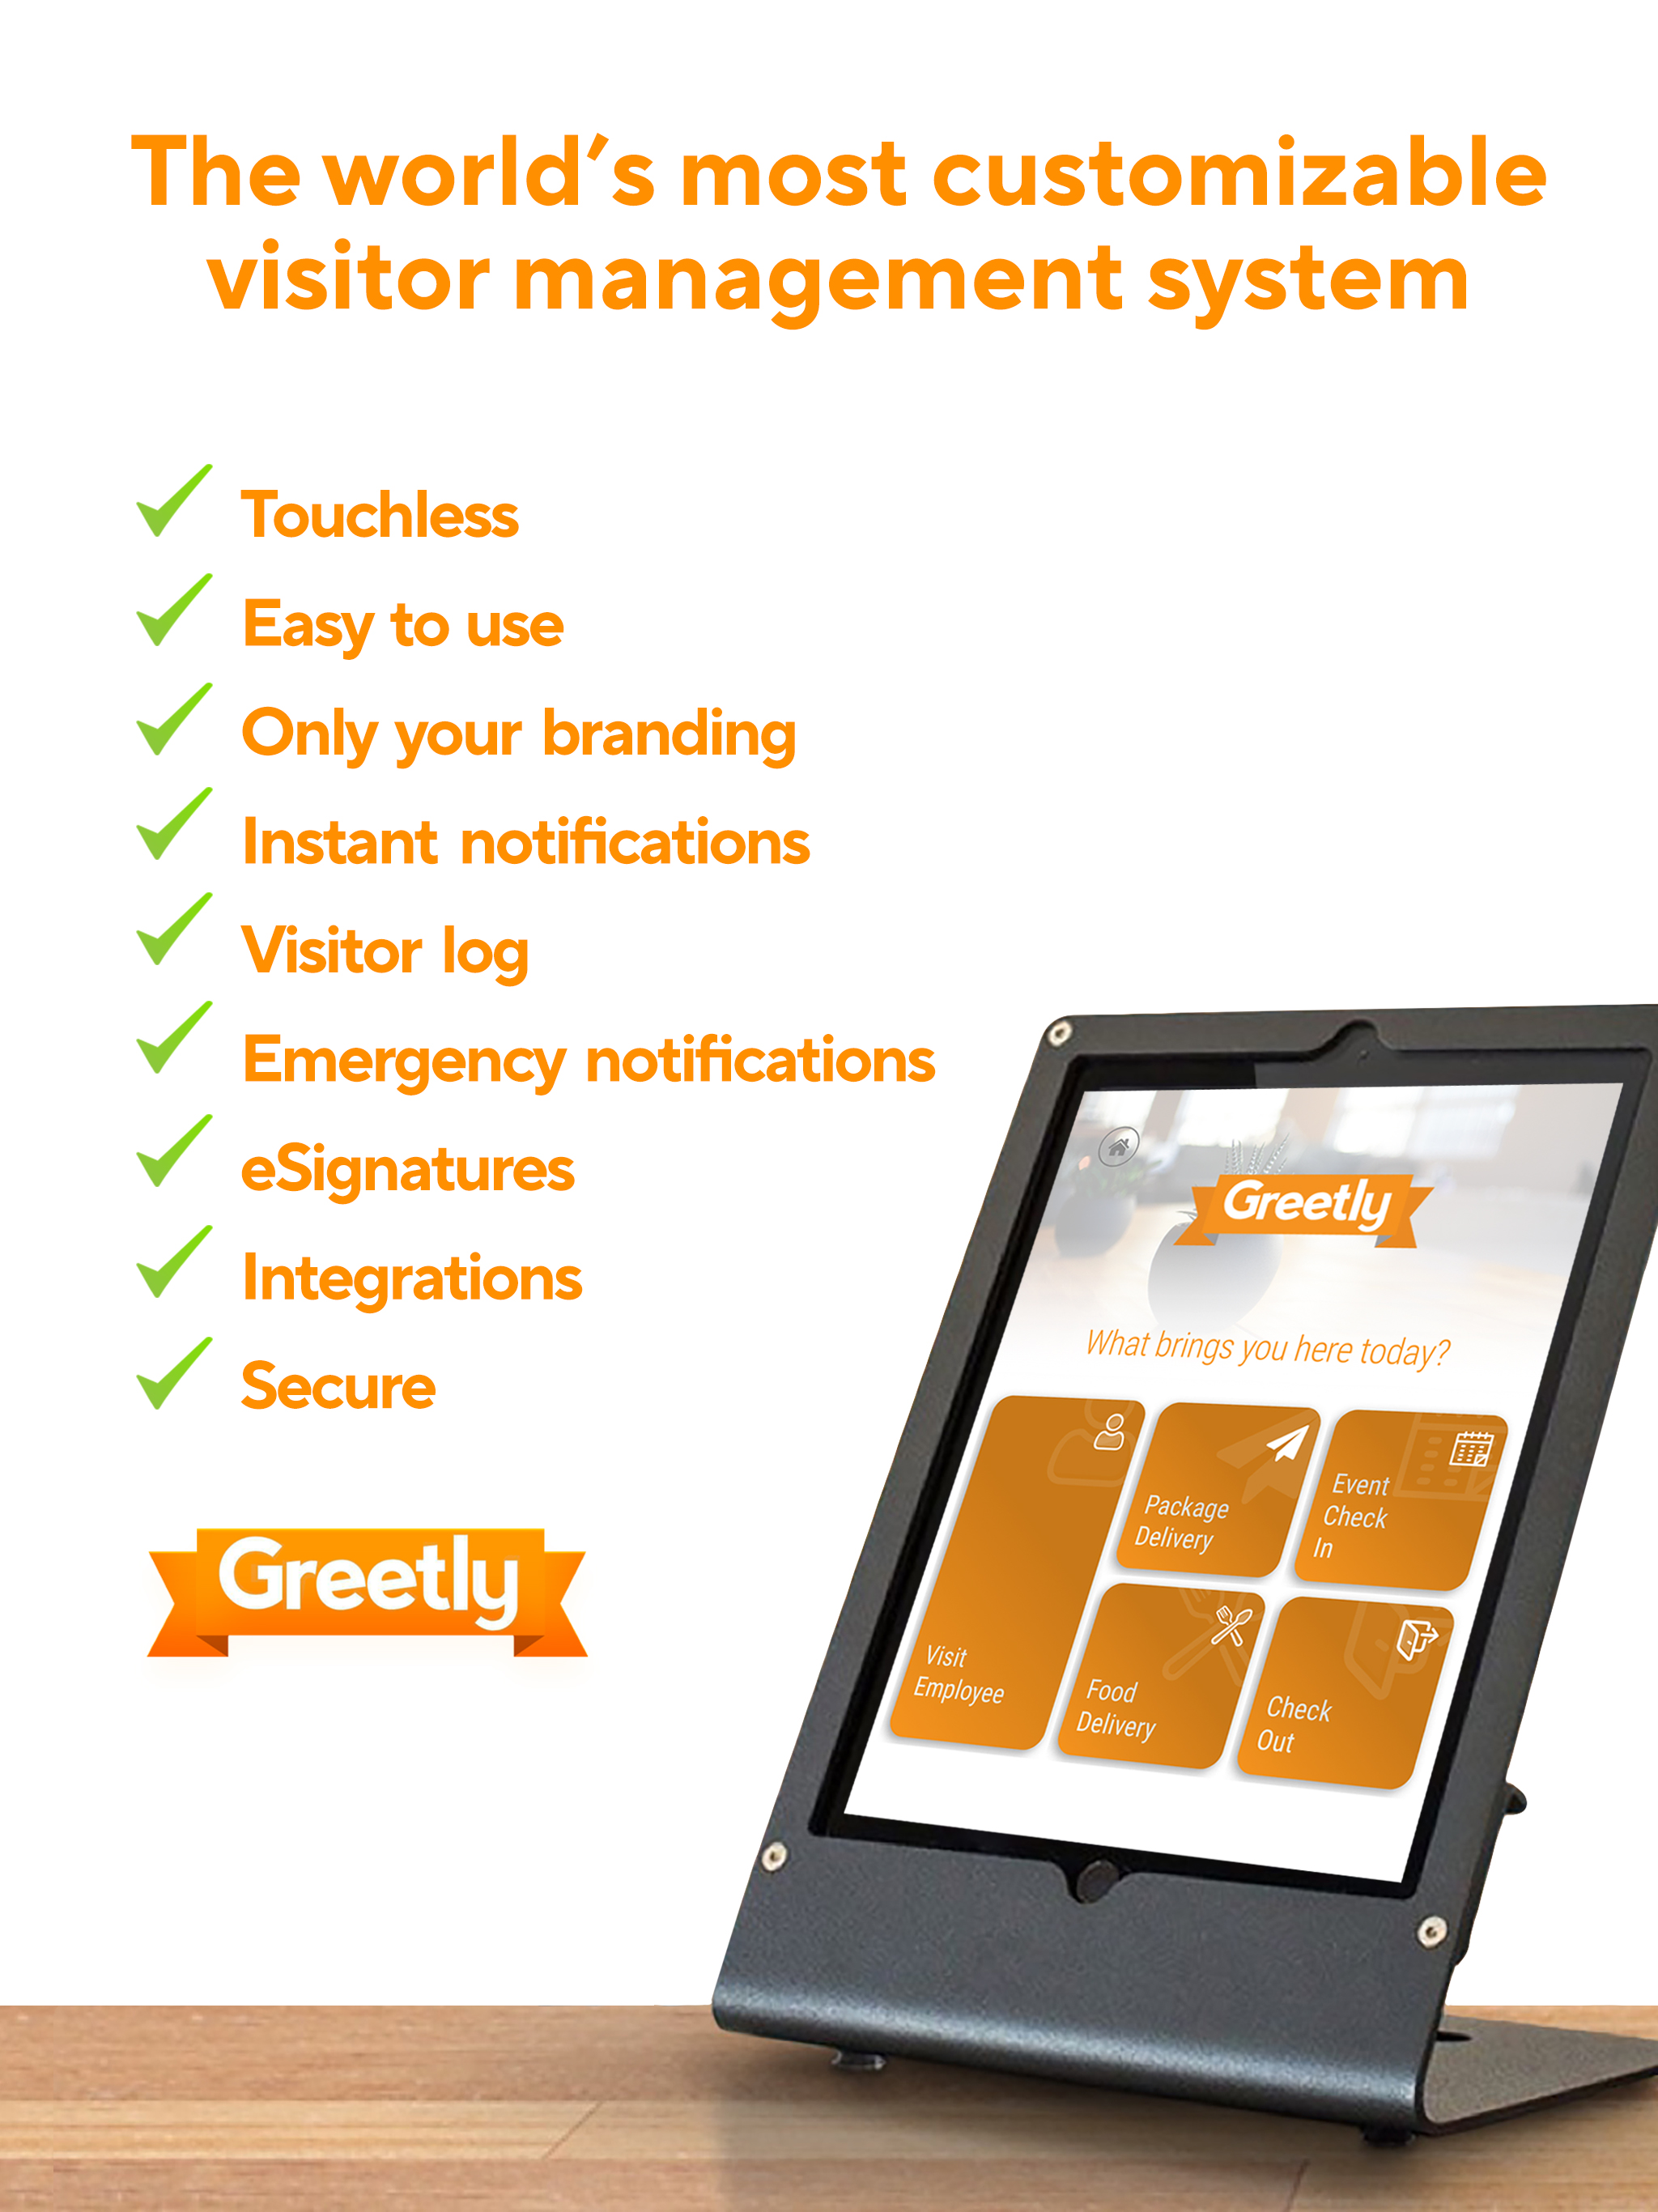 Greetly is the only fully customizable visitor management system in the world and the first visitor sign-in app to offer no-touch check-ins. Greetly's digital receptionist app saves time and money for our clients like the US Air Force, DHL and Randstad.